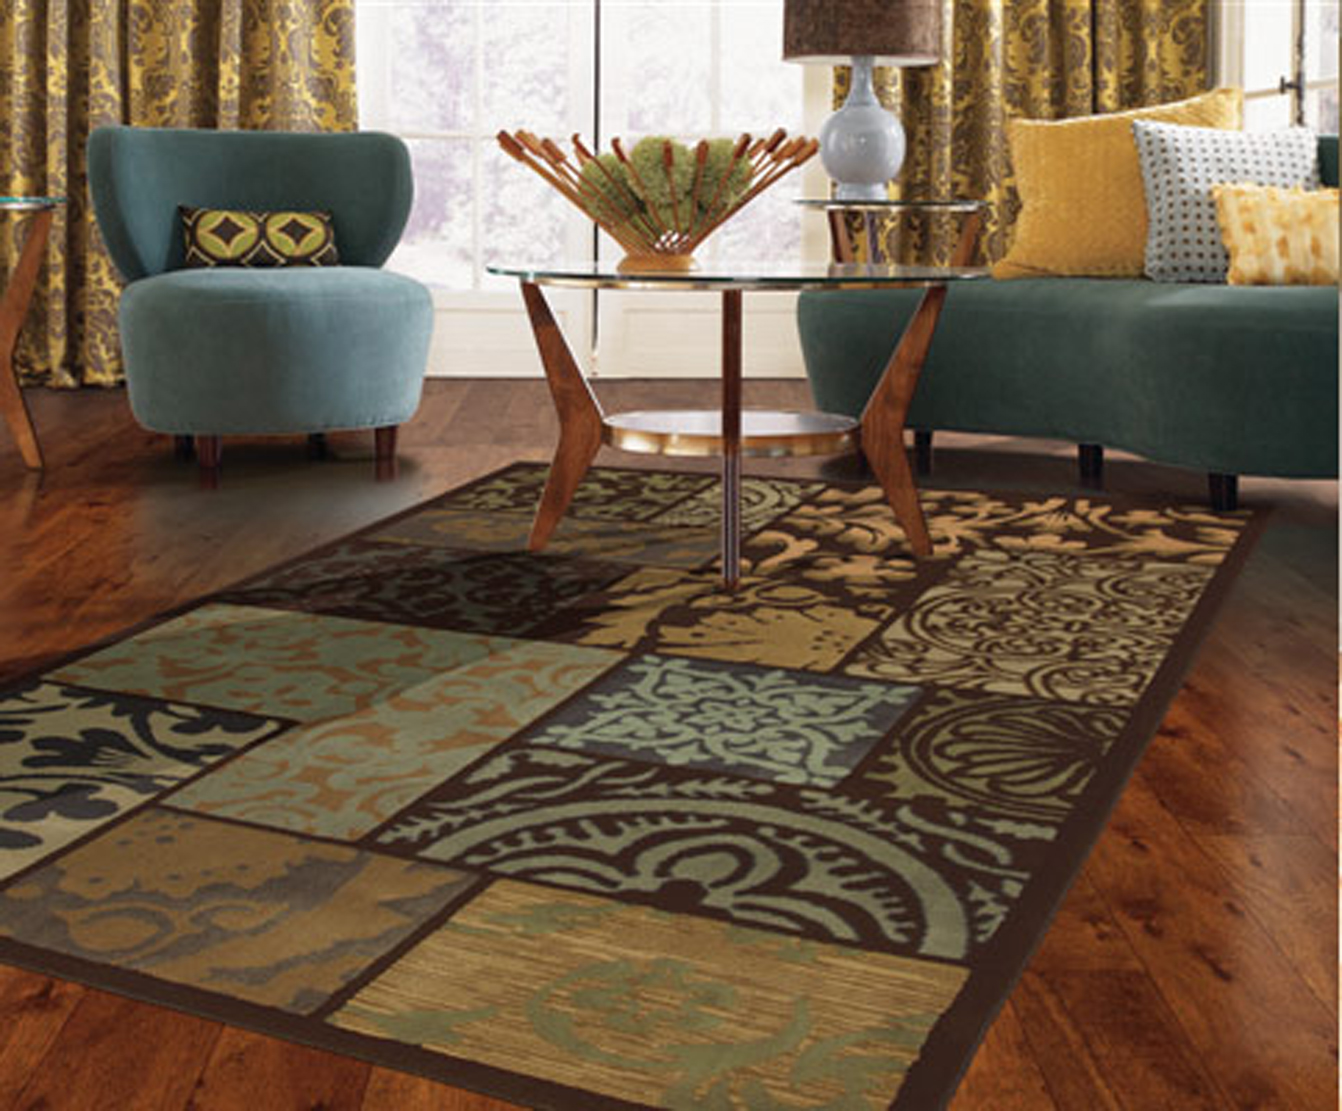 Colorful area rugs unique rugs for the living room inoutinterior How to buy an area rug for living room